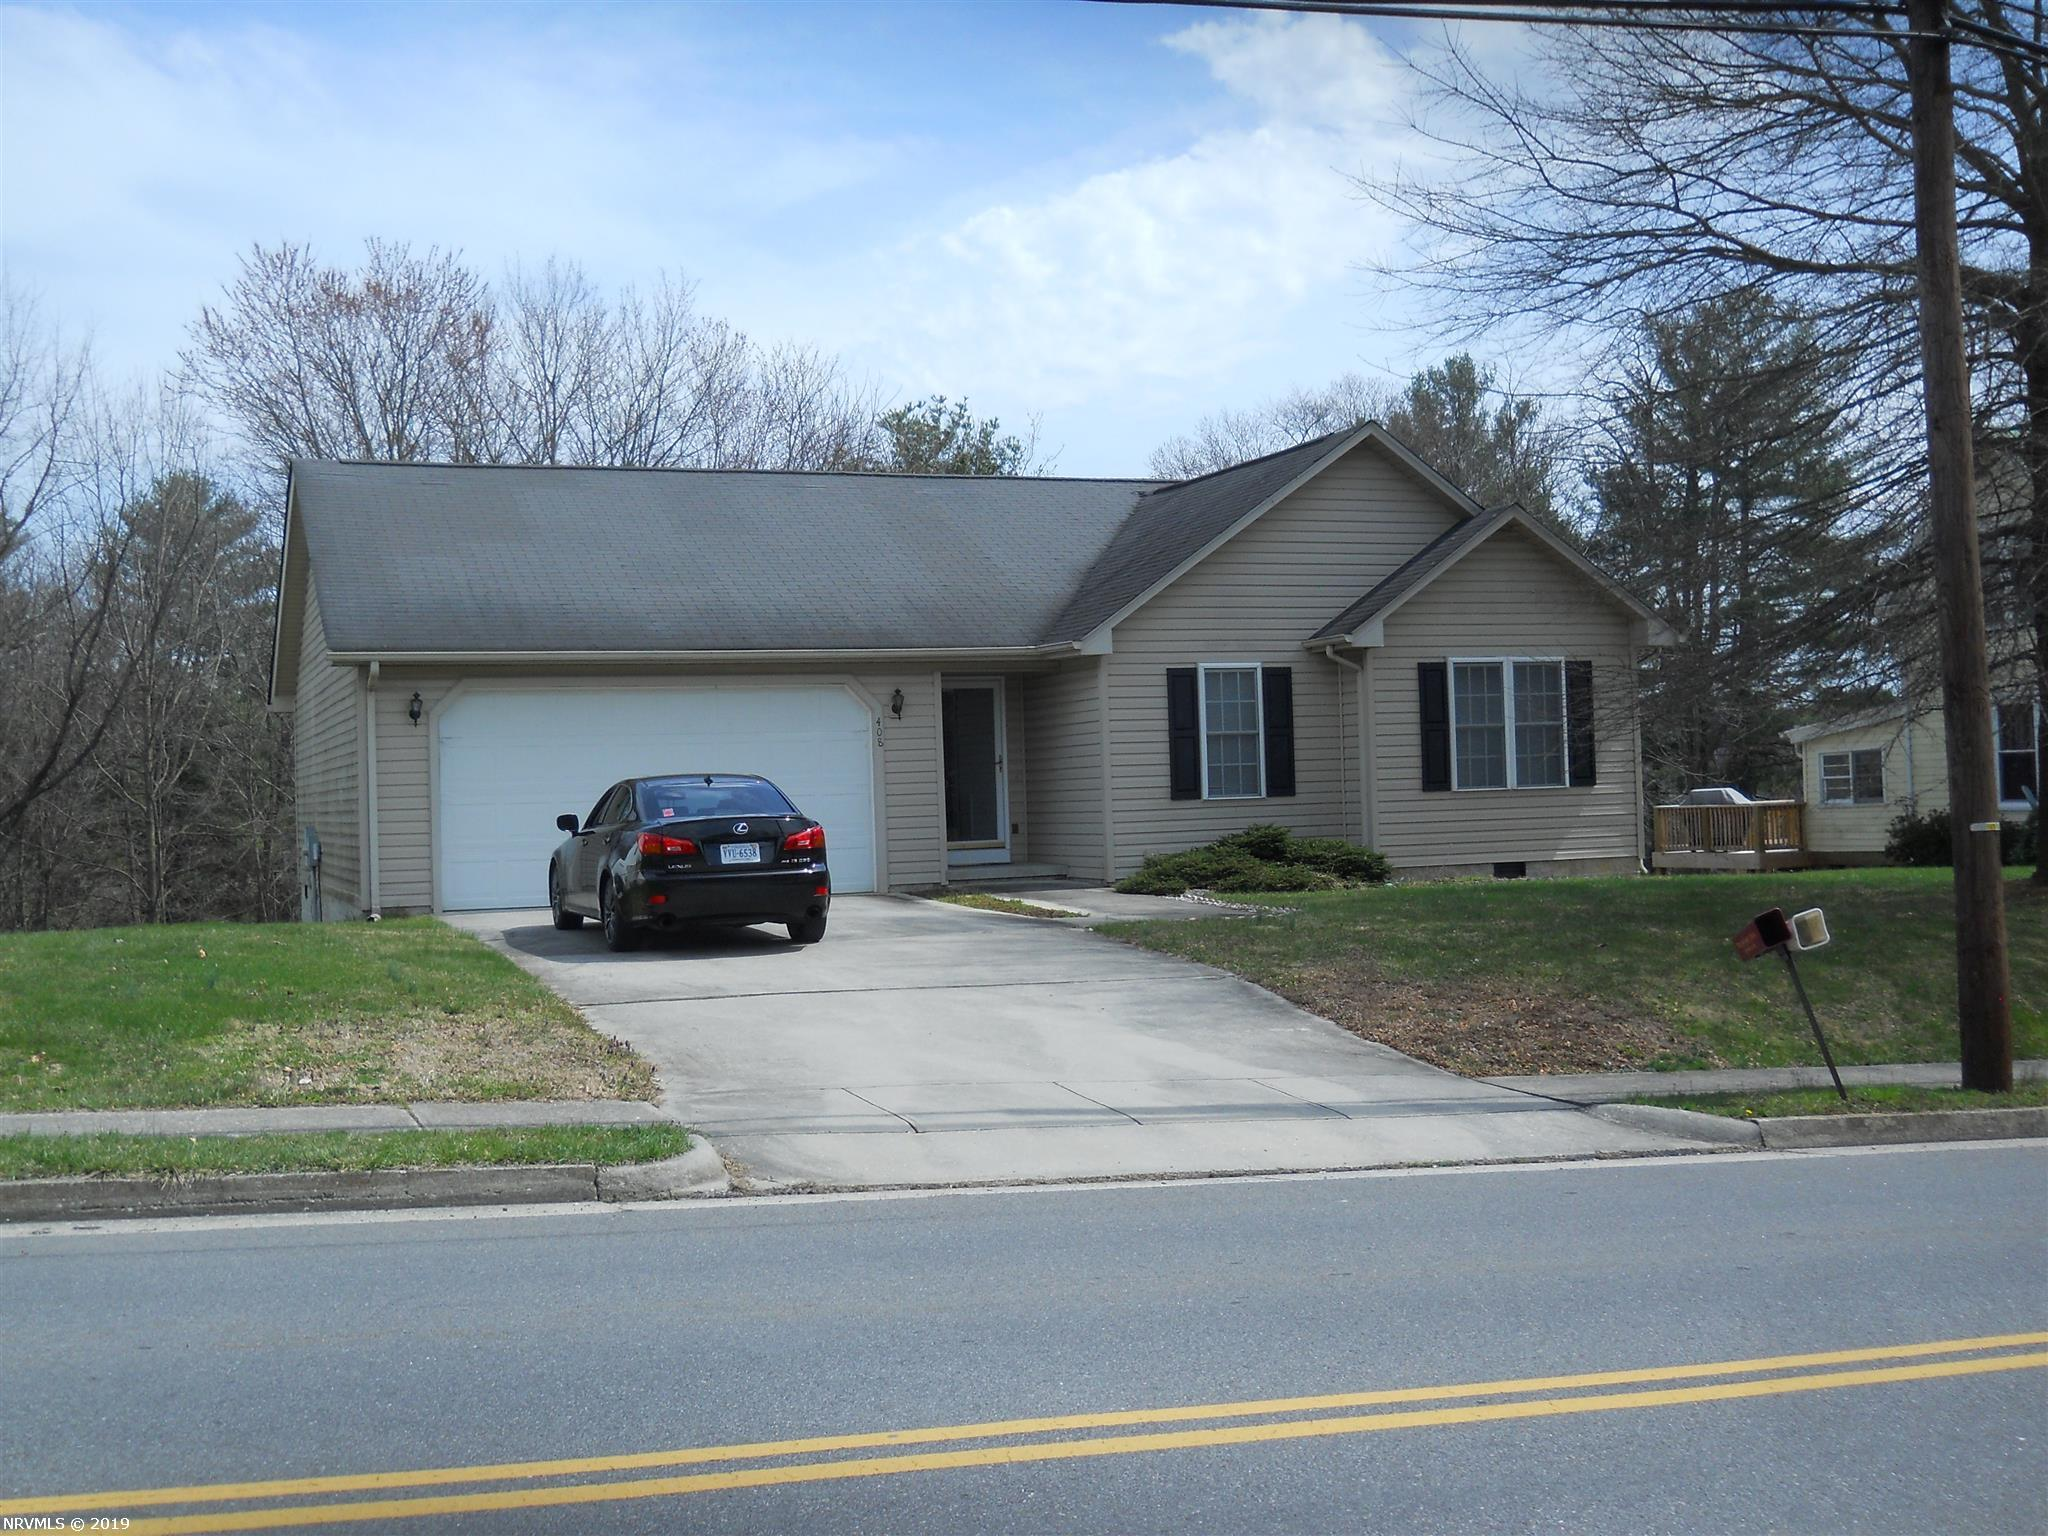 IMMACULATE BEAUTIFUL 3 BEDROOM ONE LEVEL DUBLIN RANCH HOME. LOCATION LOCATION, LOCATION!  CLOSE TO RADFORD, BLACKSBURG AND PULASKI !  Move in ready! 2 car garage .Private back yard!  Maintenance free exterior. Open floor plan! Heat Pump,